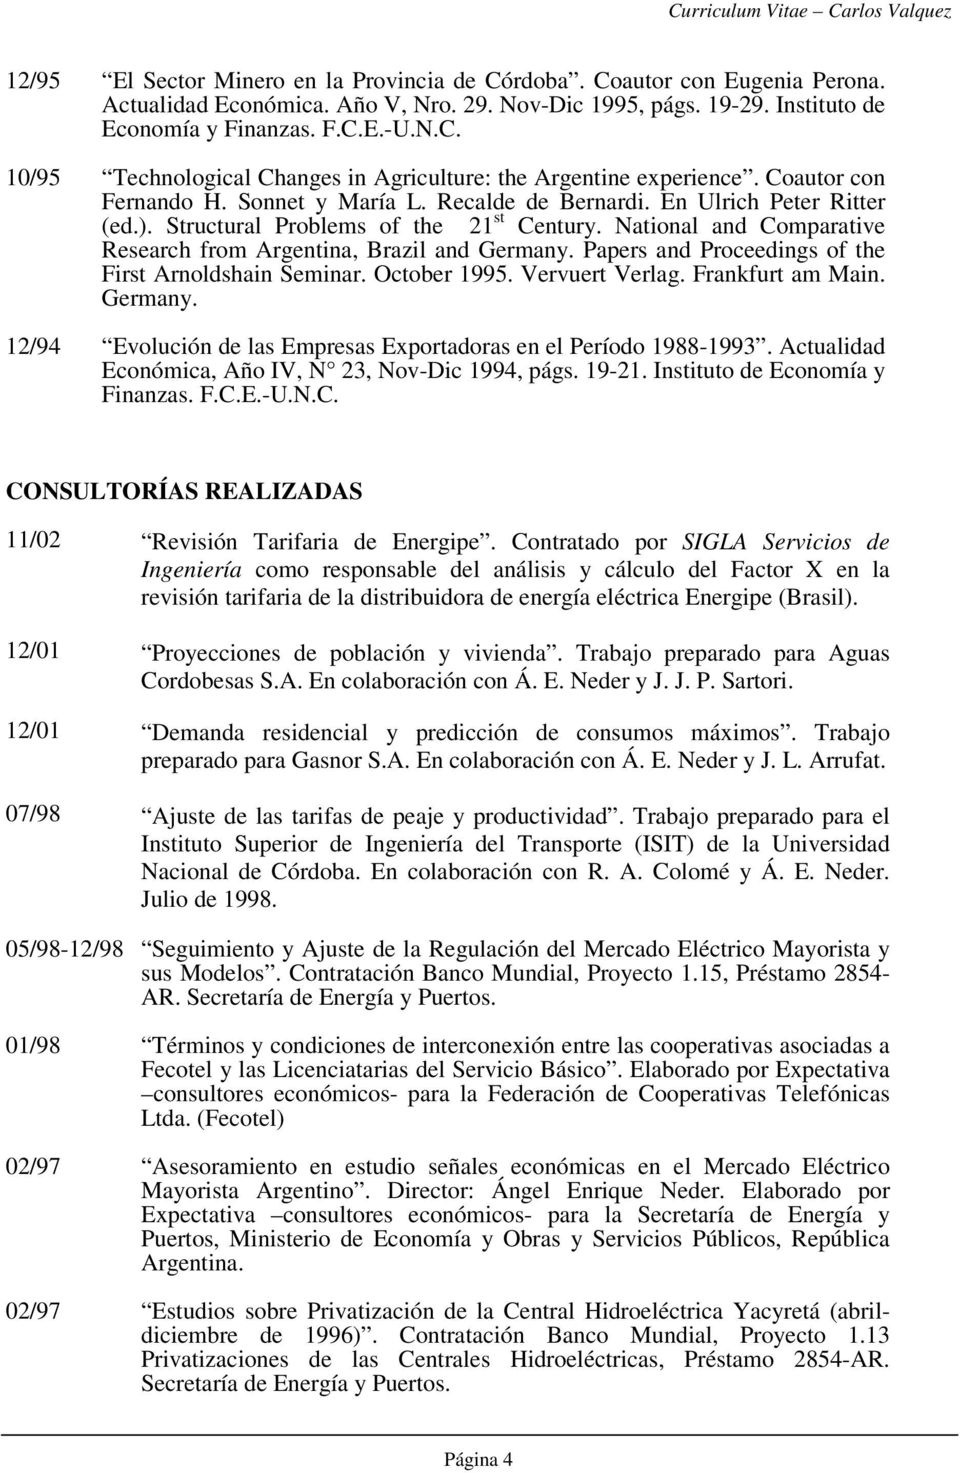 National and Comparative Research from Argentina, Brazil and Germany. Papers and Proceedings of the First Arnoldshain Seminar. October 1995. Vervuert Verlag. Frankfurt am Main. Germany. 12/94 Evolución de las Empresas Exportadoras en el Período 1988-1993.